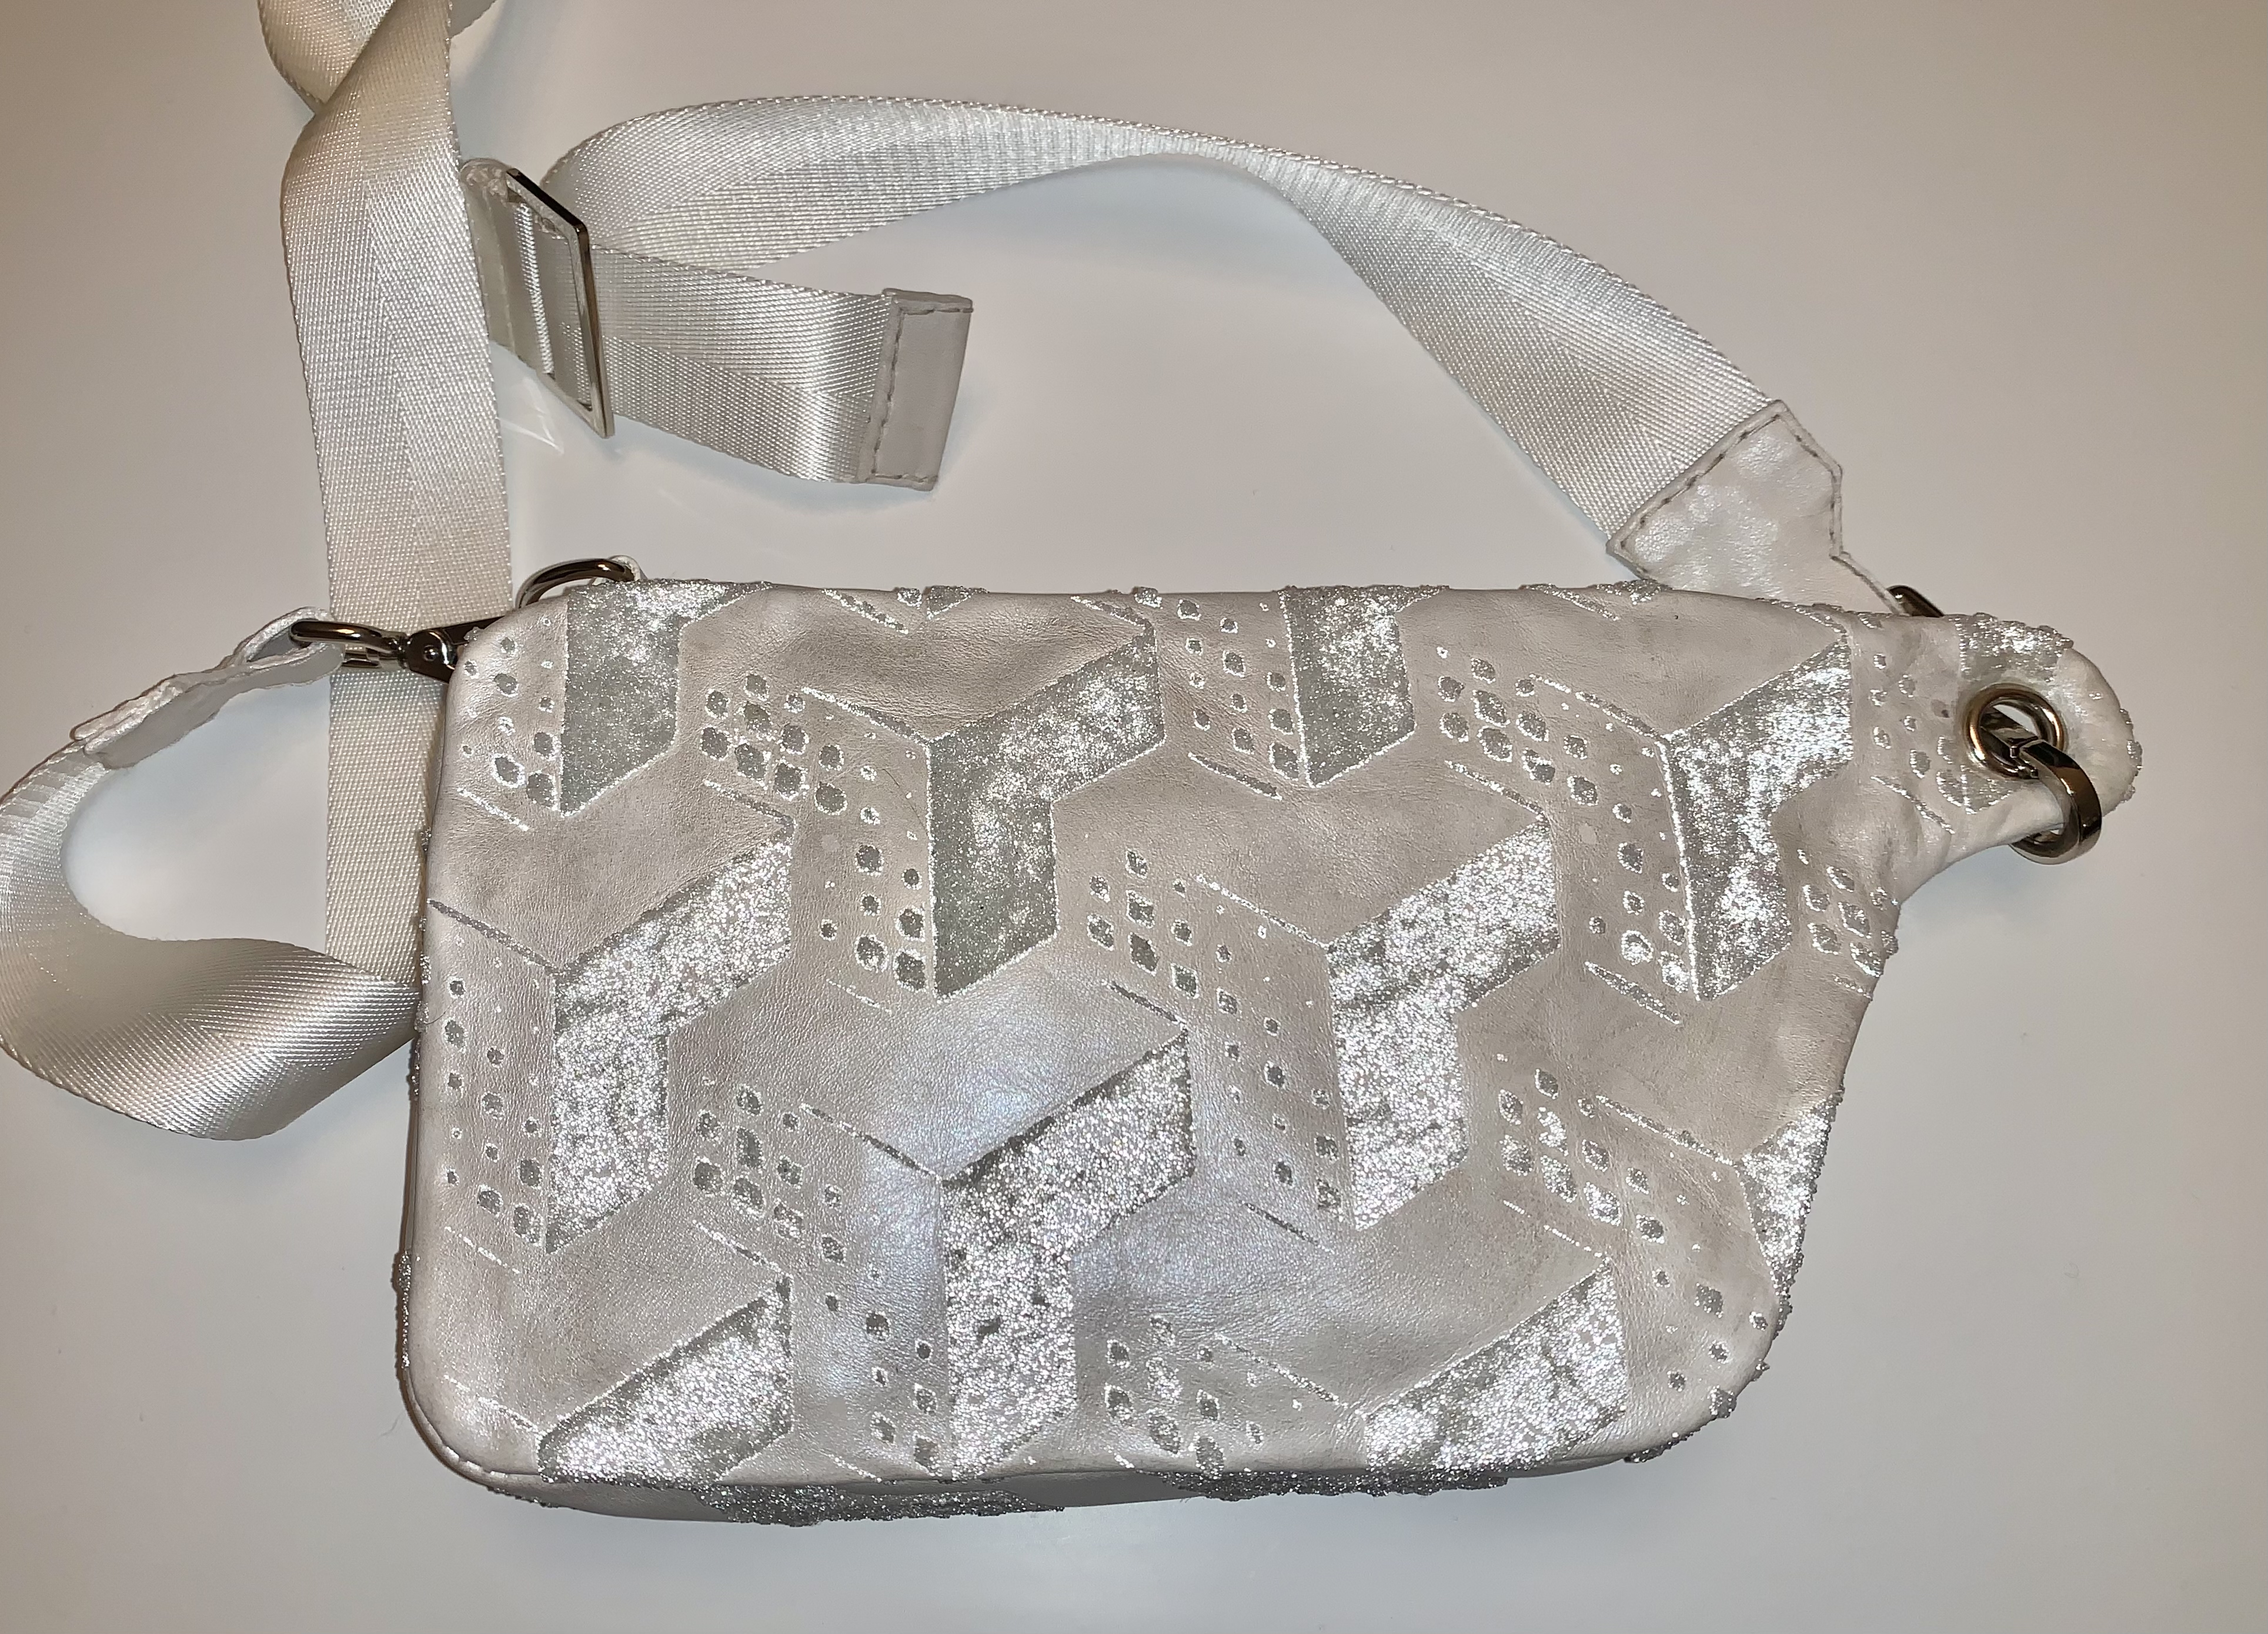 Glass stenciled crossbody leather bag